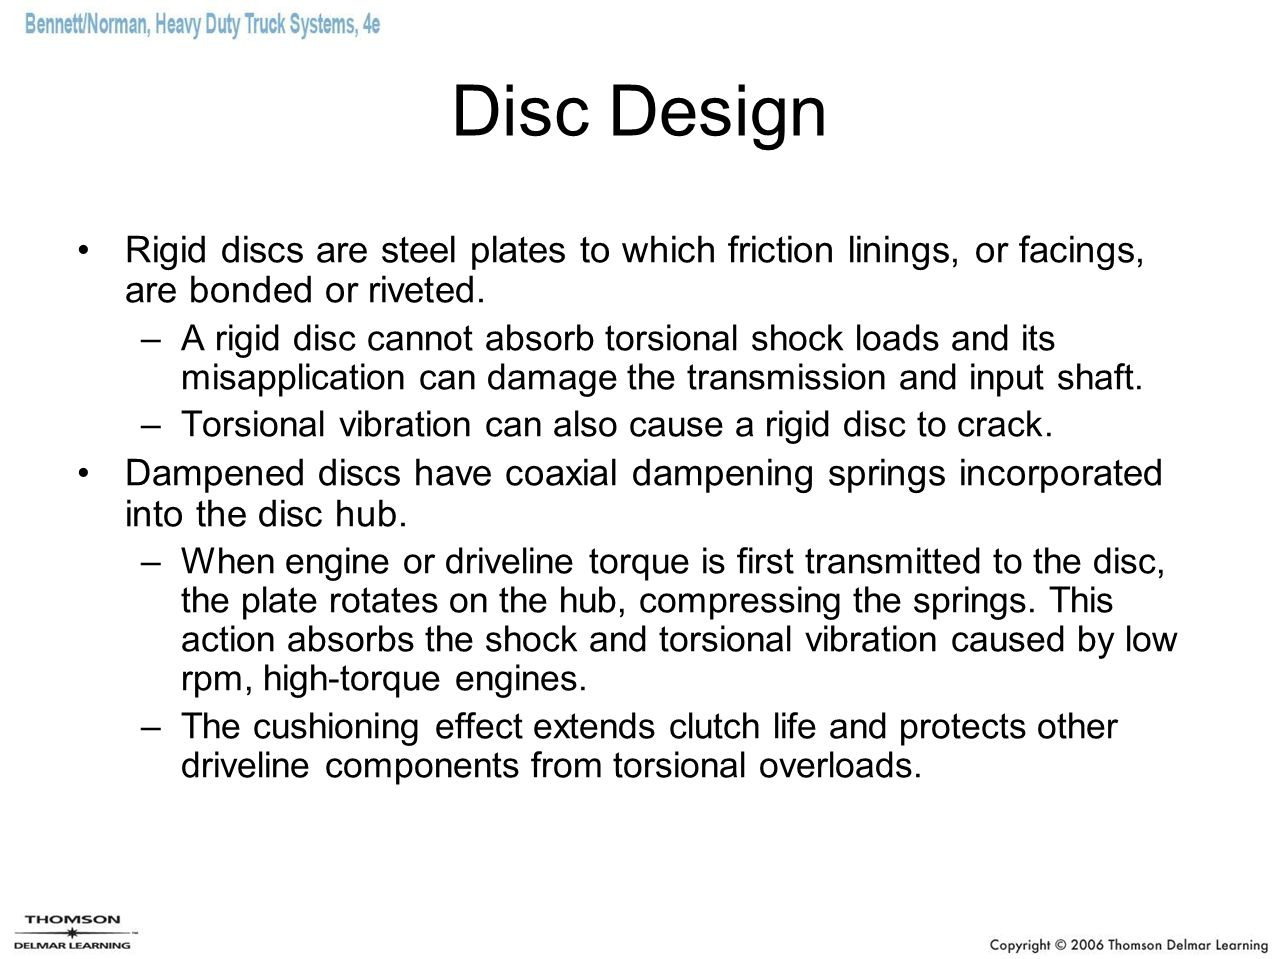 Disc Design Rigid discs are steel plates to which friction linings, or facings, are bonded or riveted.